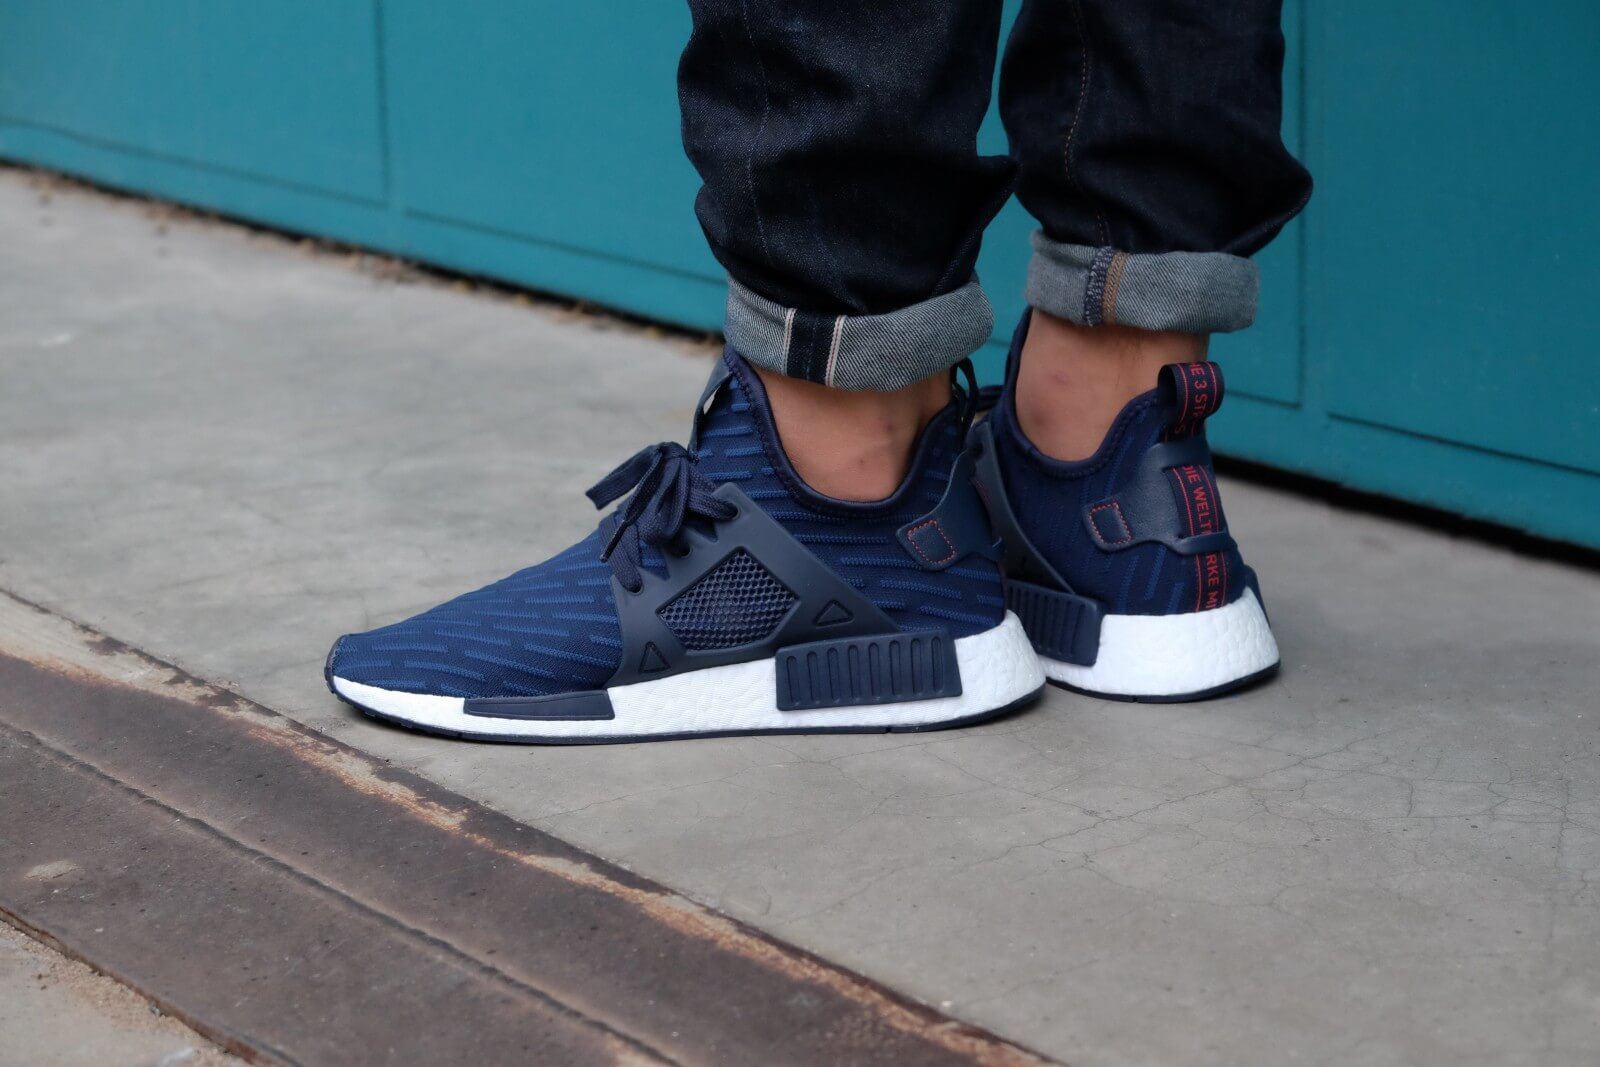 adidas Blue Primeknit NMD XR1 Shoes adidas GR